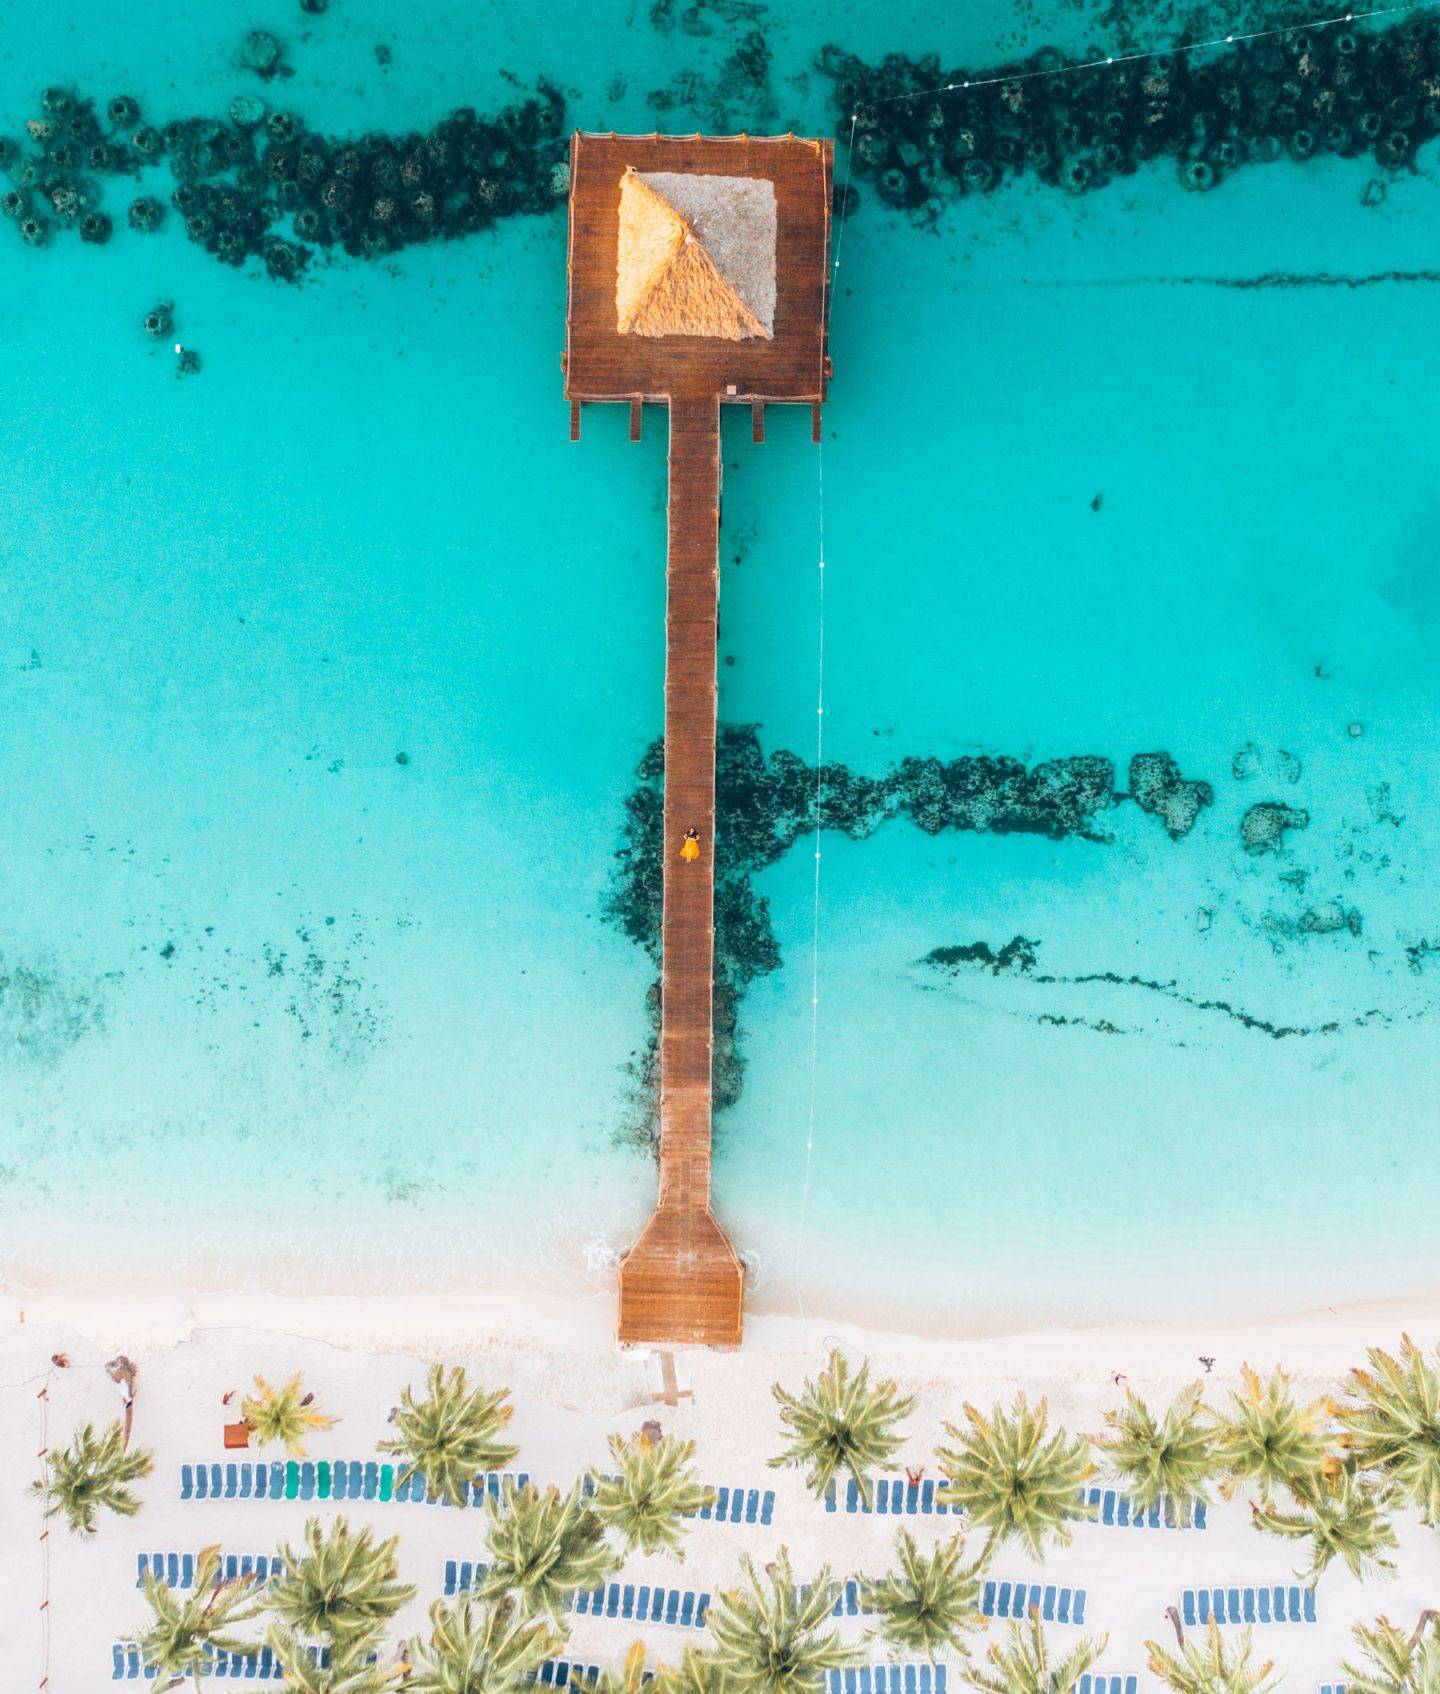 Looking for the best things to do in Dominican Republic? We recommend starting with this list to narrow down your choices. Covering everything from things to do in La Romana, Things to do in Punta Cana, best day trips from Punta Cana, and how to get to Saona island.